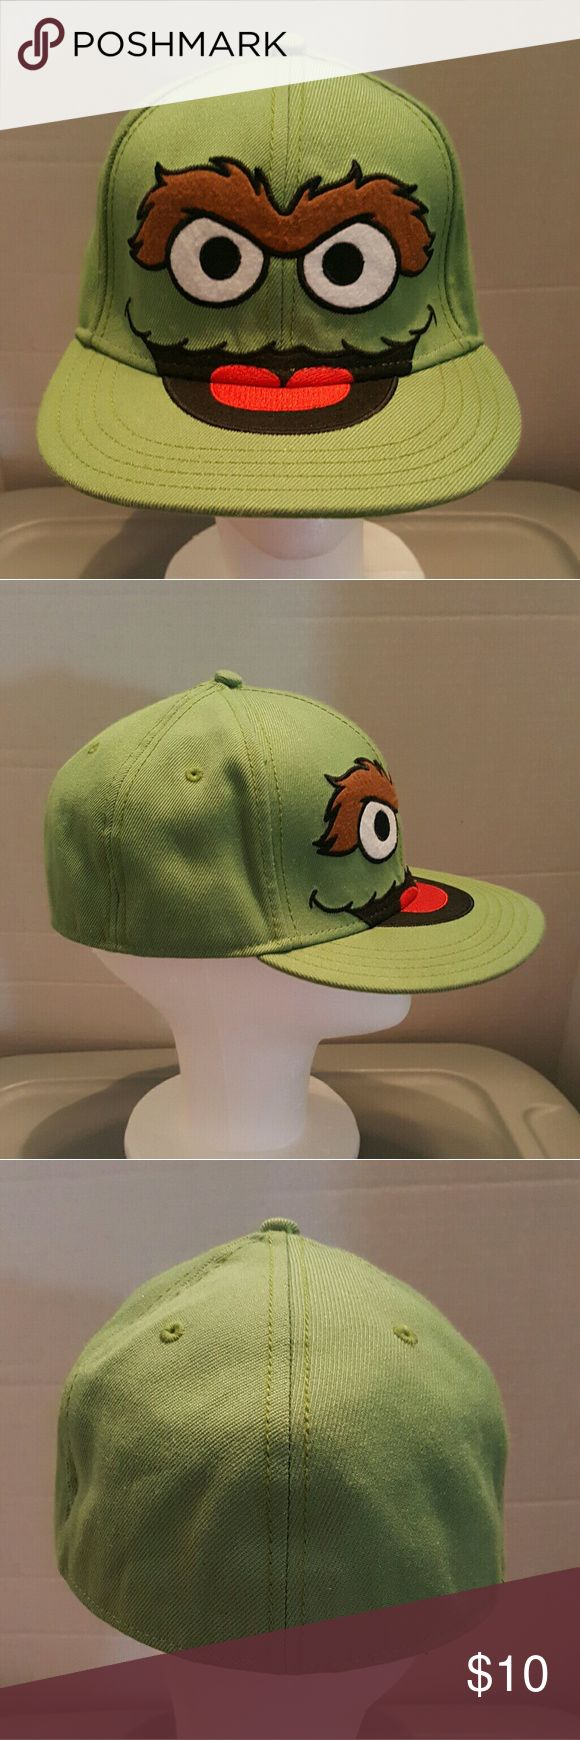 Sesame Street Oscar The Grouch Baseball Cap Sesame Street Oscar The Grouch  Size Medium Fitted  Baseball Cap Sesame Street Accessories Hats